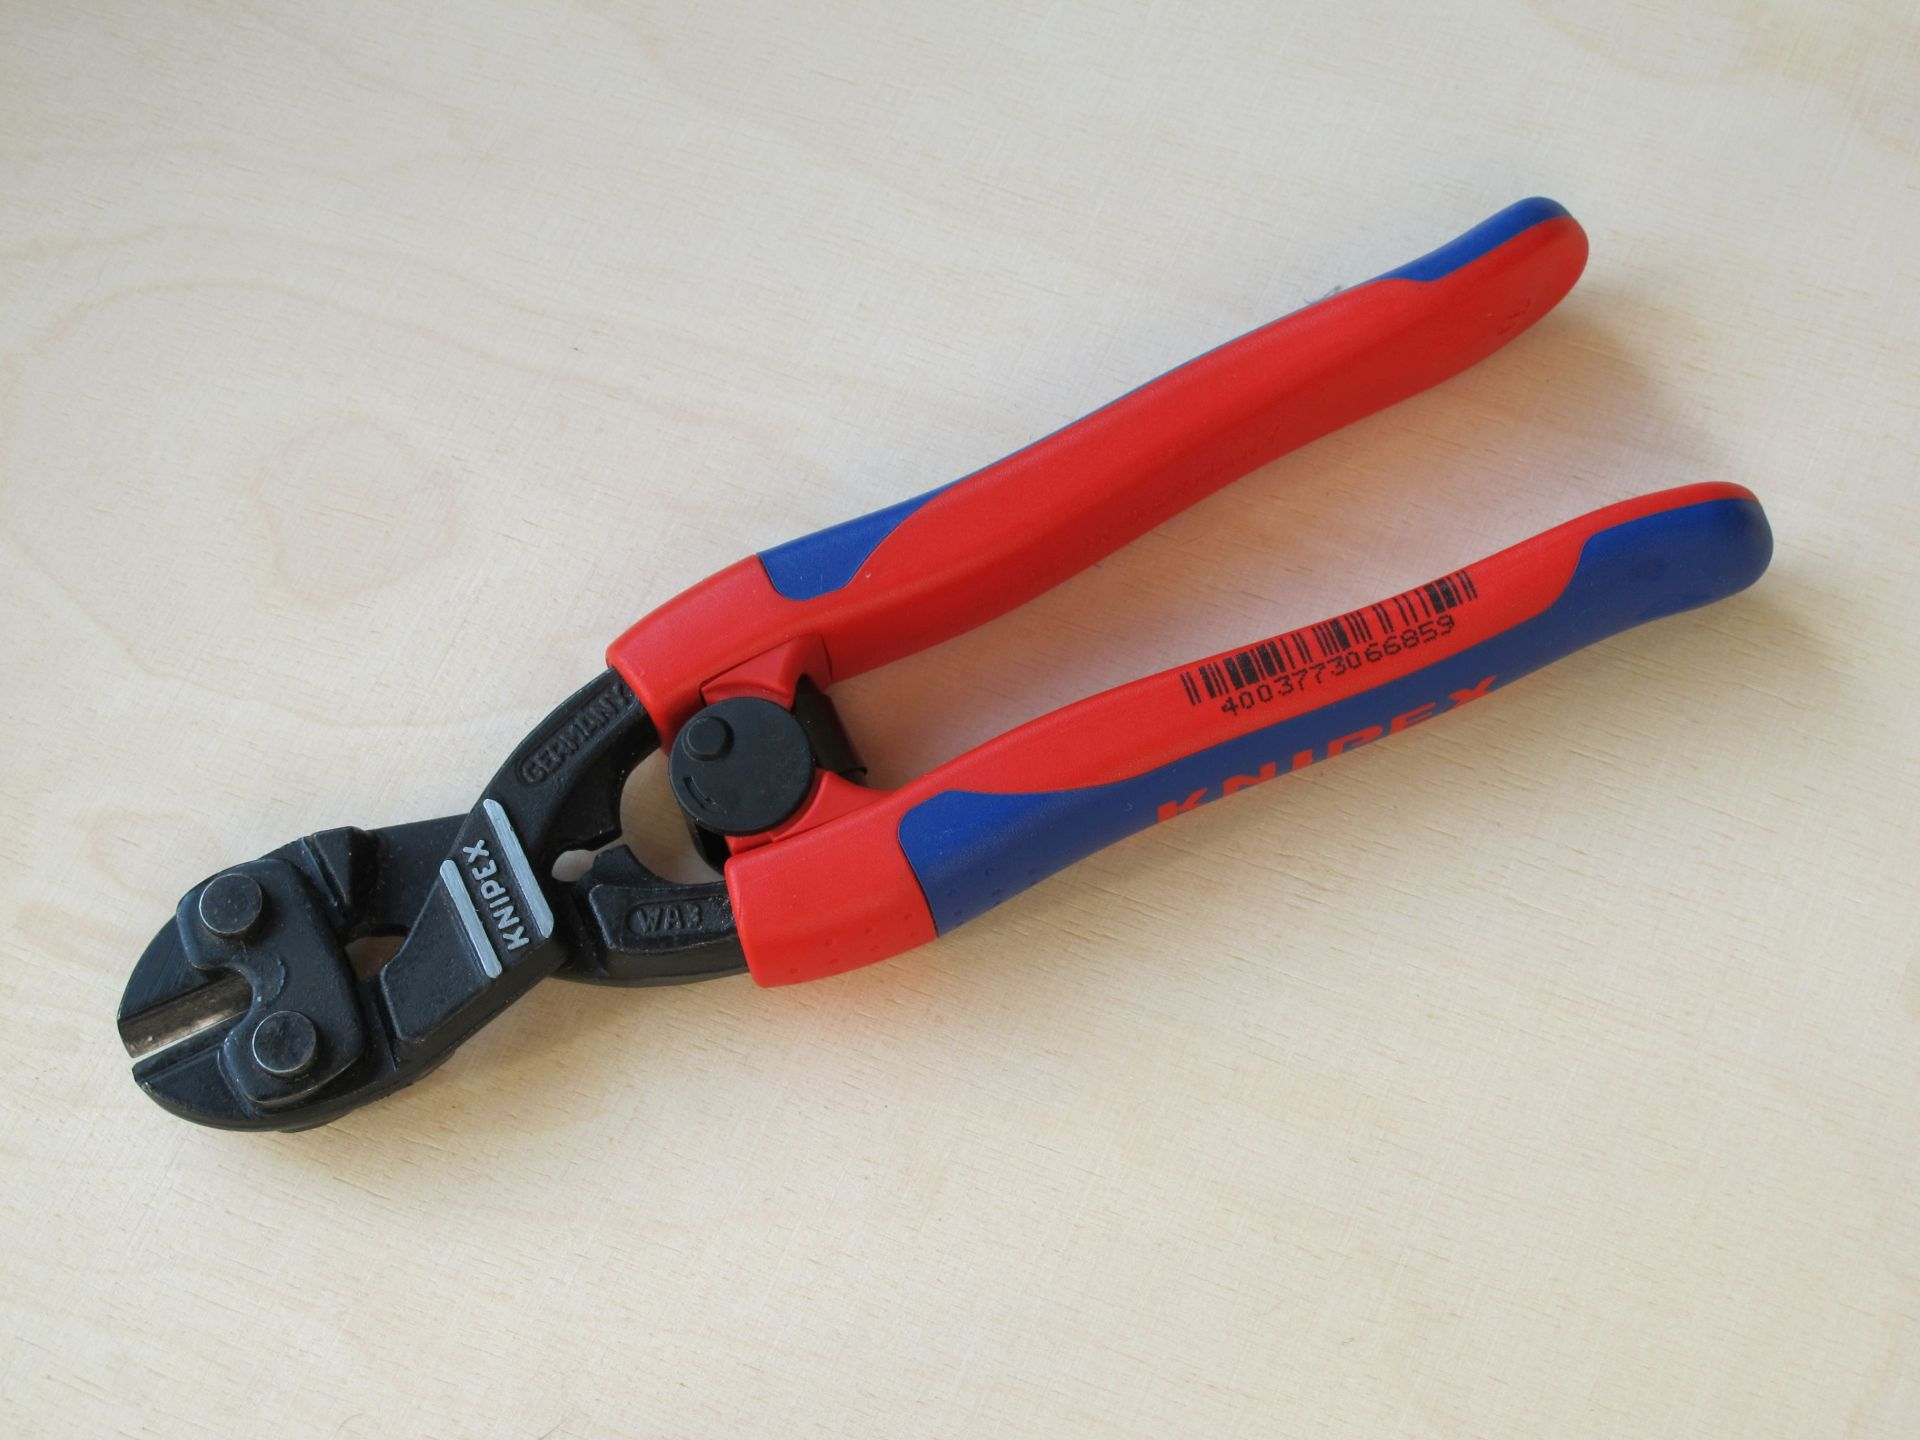 Photo of bolt cutter